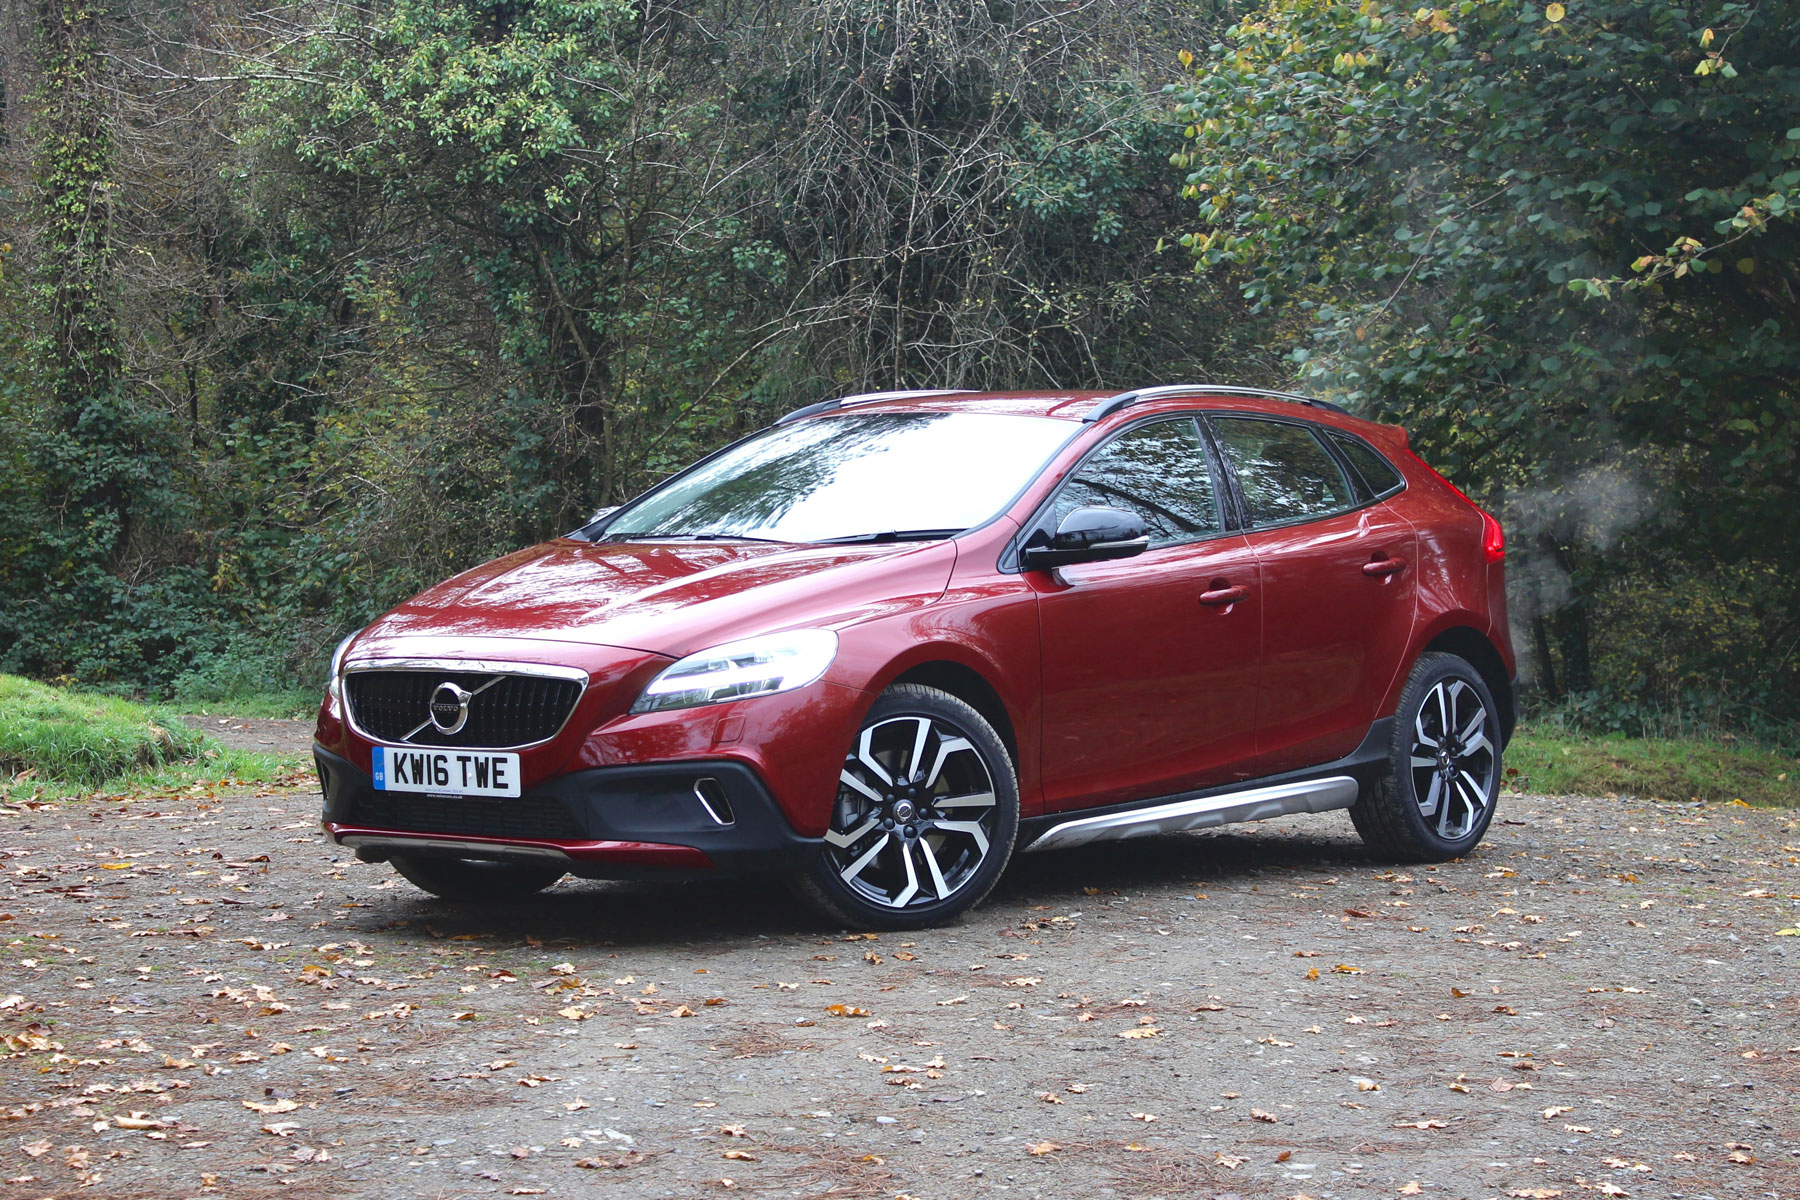 volvo v40 cross country t5 quick review the perfect winter hatchback. Black Bedroom Furniture Sets. Home Design Ideas